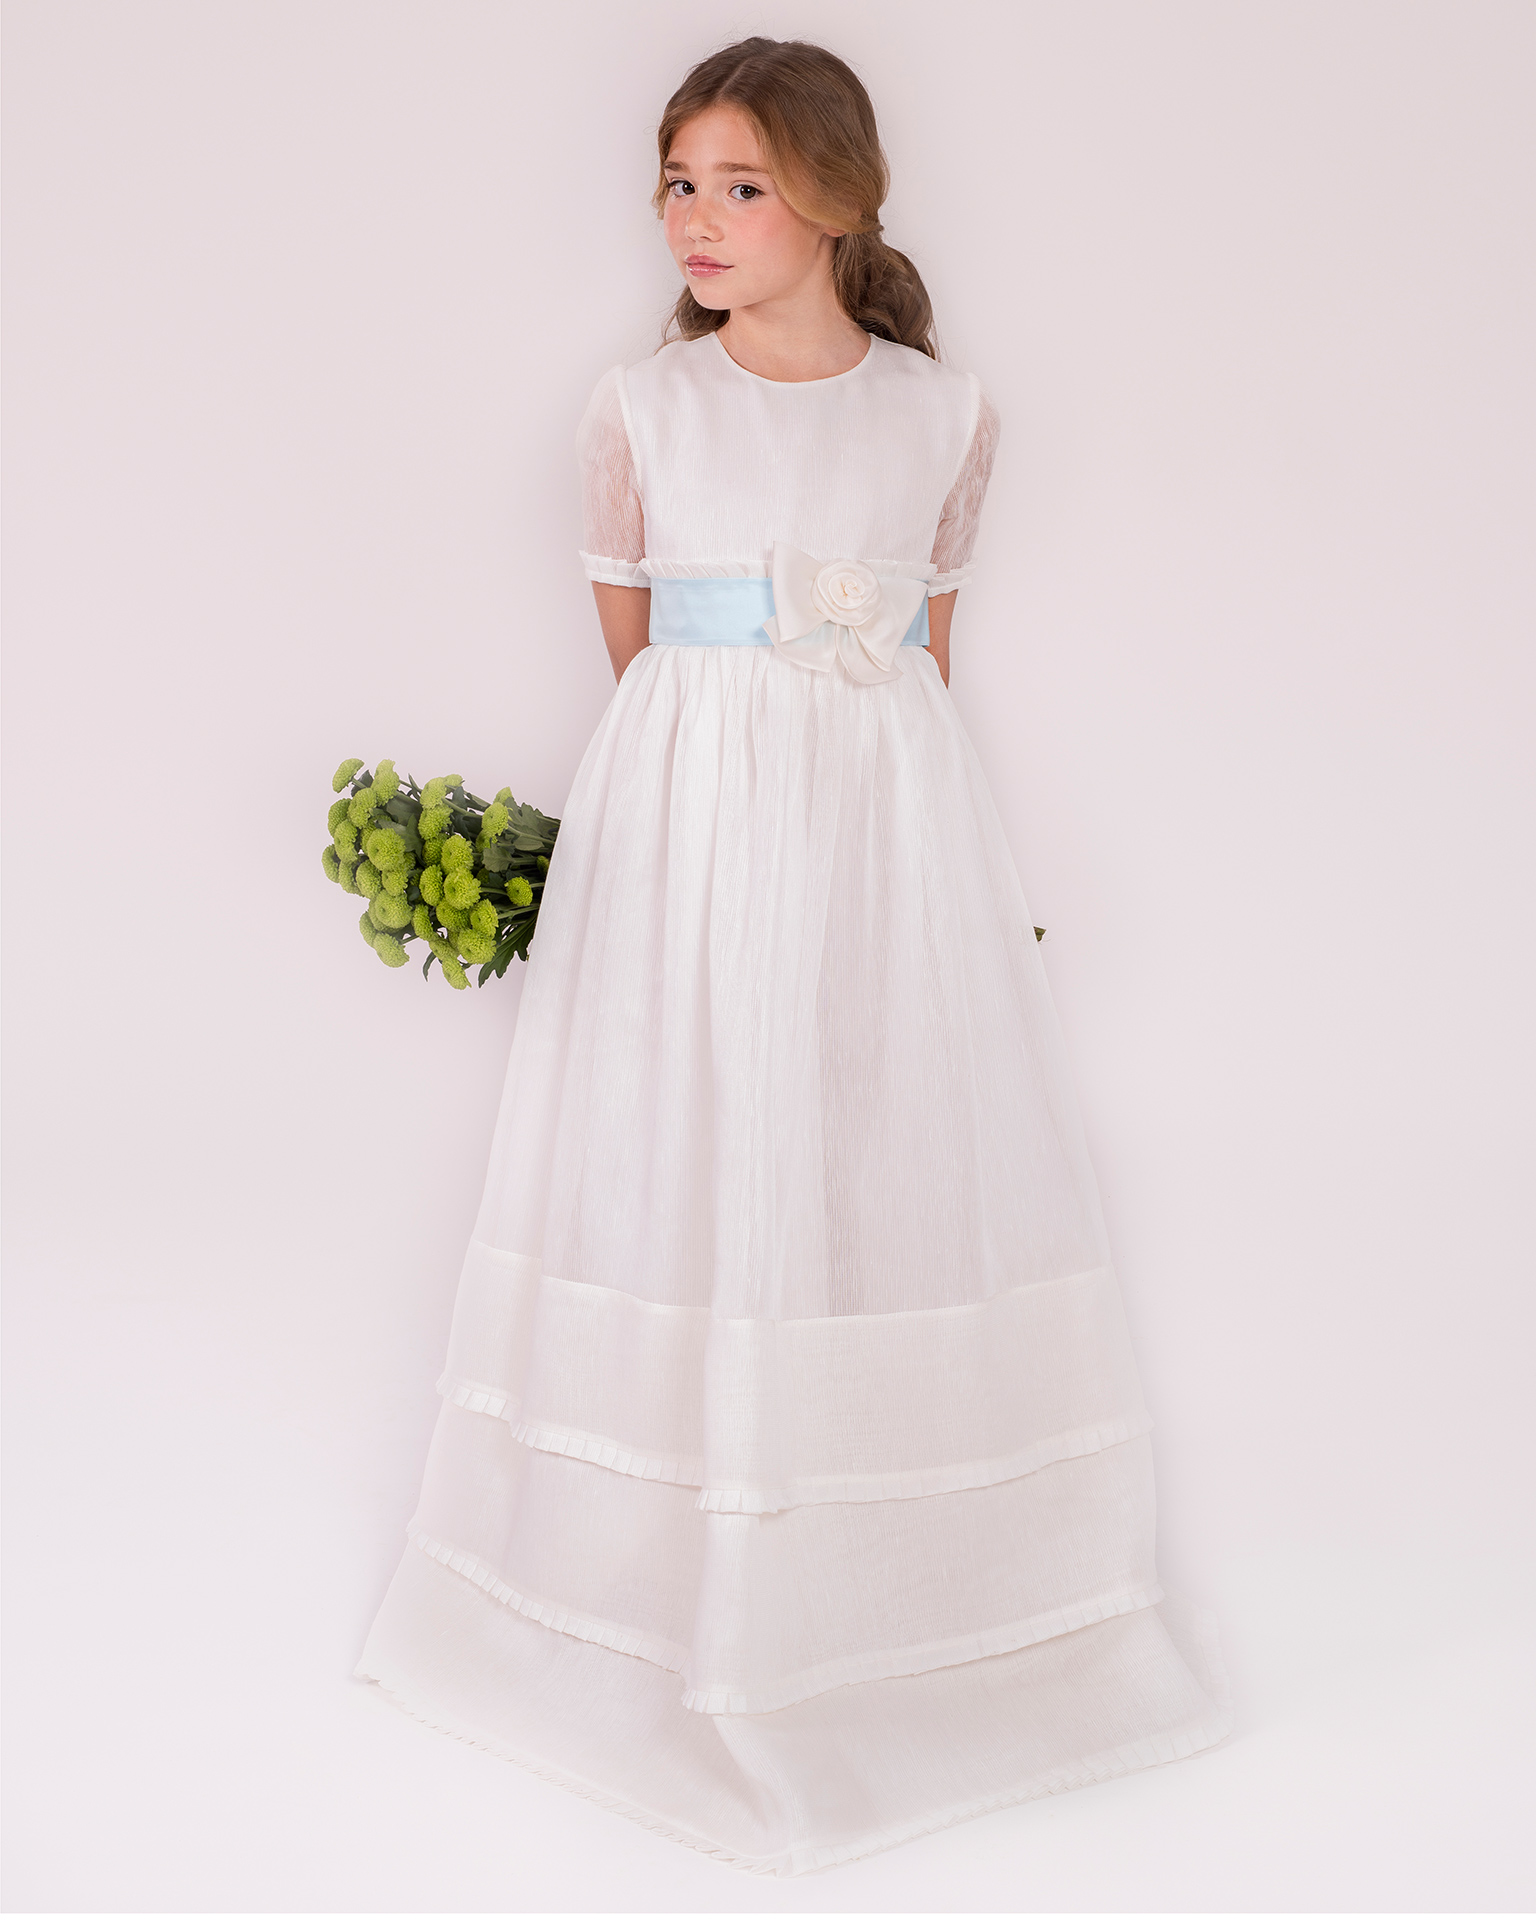 90140 ballgown-style First Communion dress